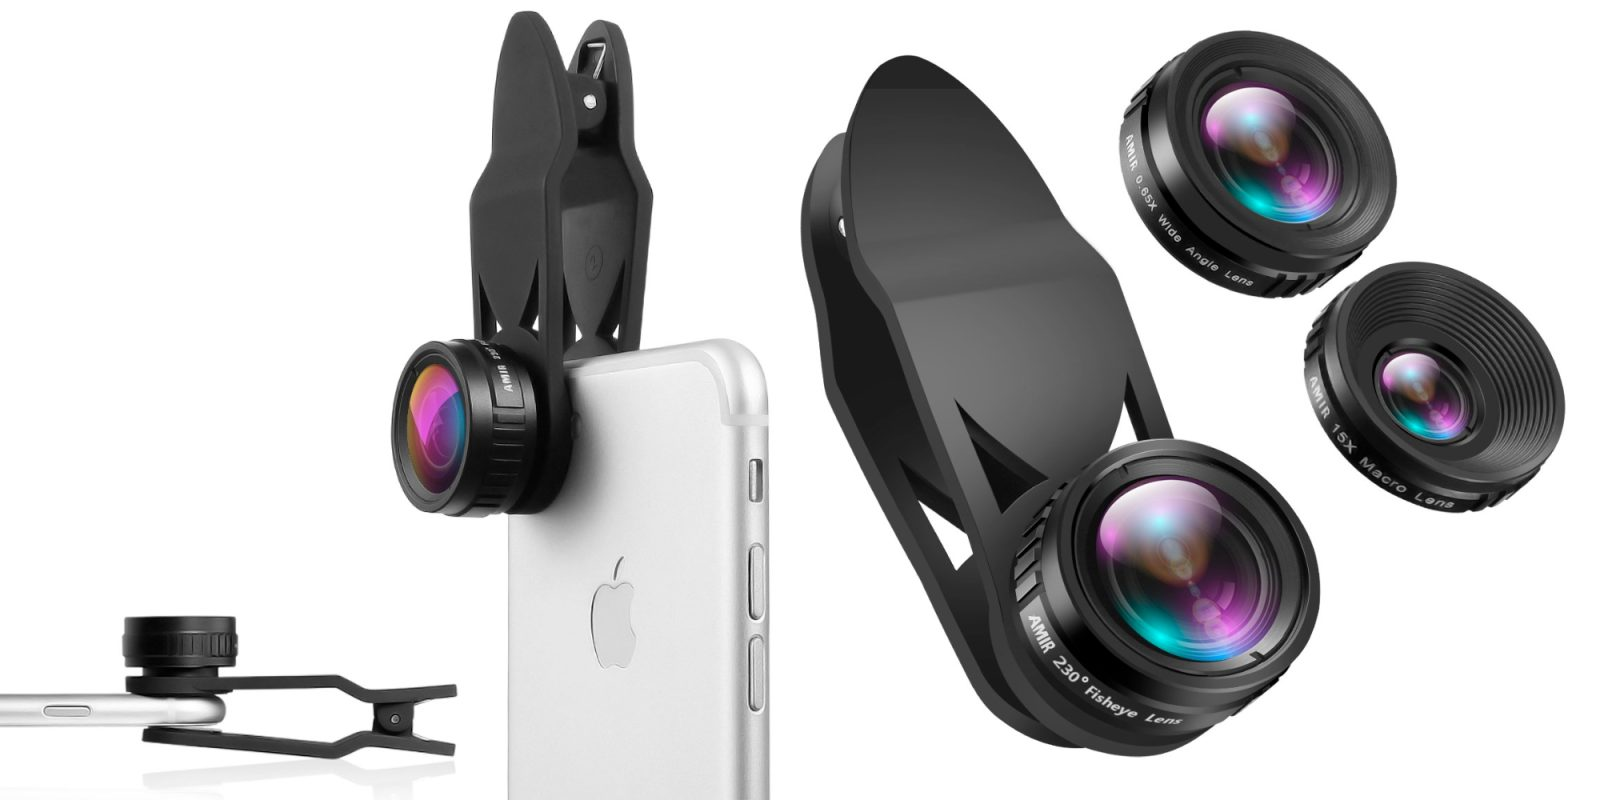 Save 60% on this must-have 3-in-1 iPhone Lens Kit, now just $5 Prime shipped